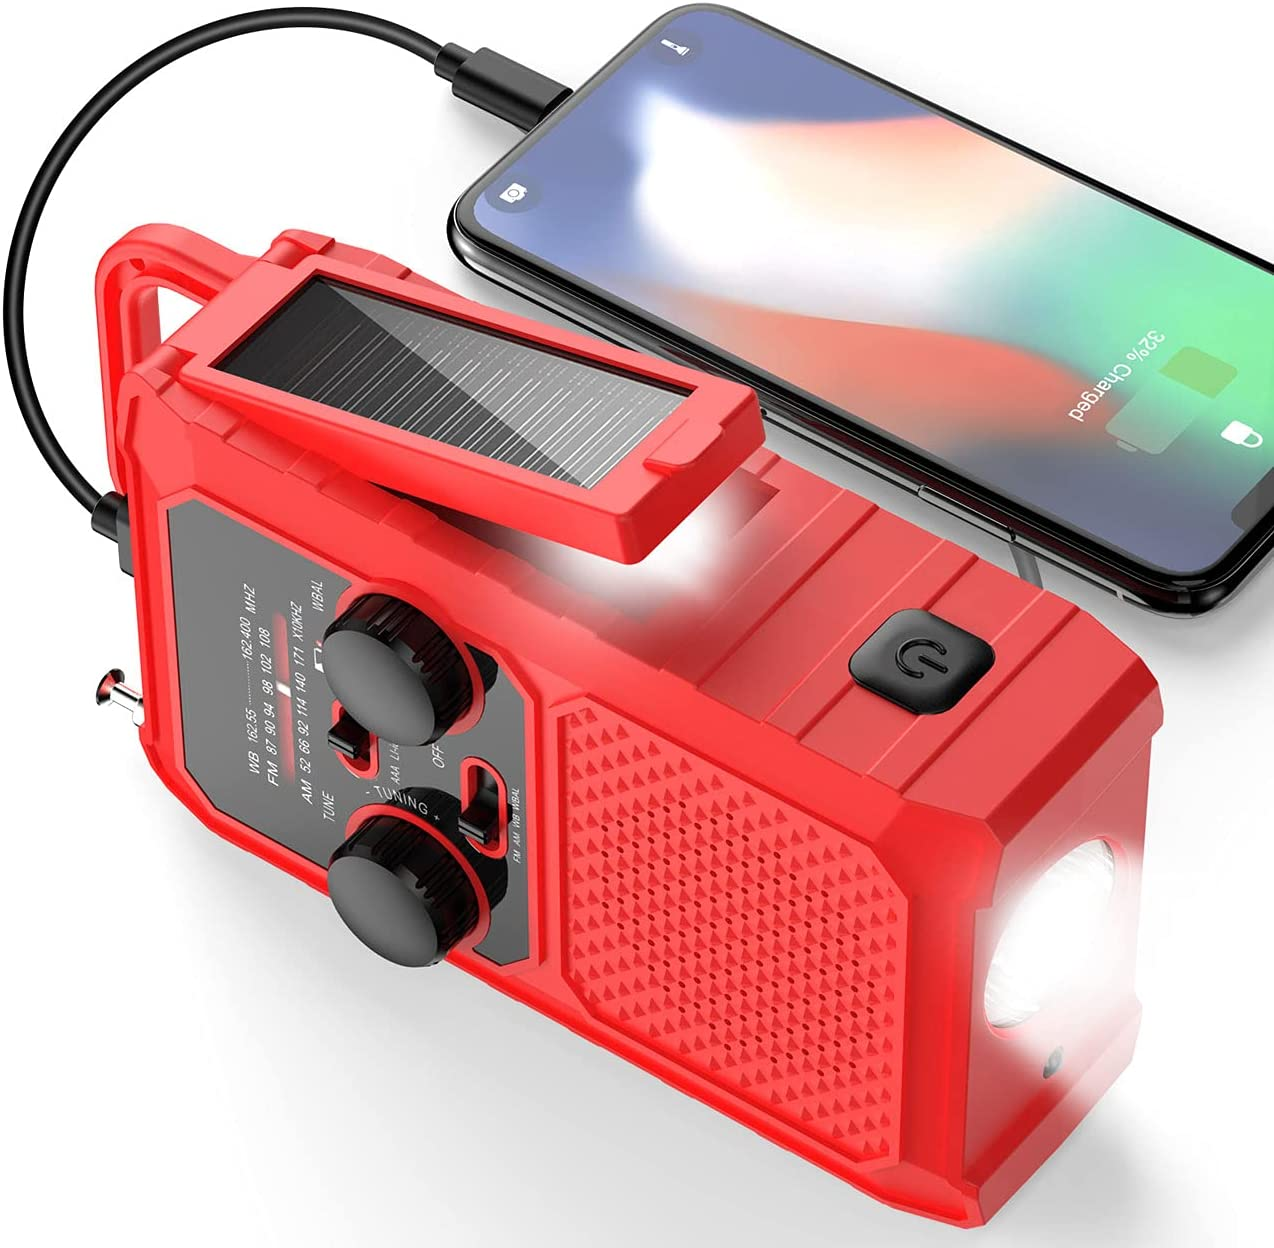 FDKOBE Emergency Solar Hand Crank Charger Portable Small Radio, 5000mAh Rechargeable Battery Weather Radio, AM/FM/NOAA with 1W LED Flashlight& Reading Lamp,Cell Phone Charger, SOS for Home and Outdoor